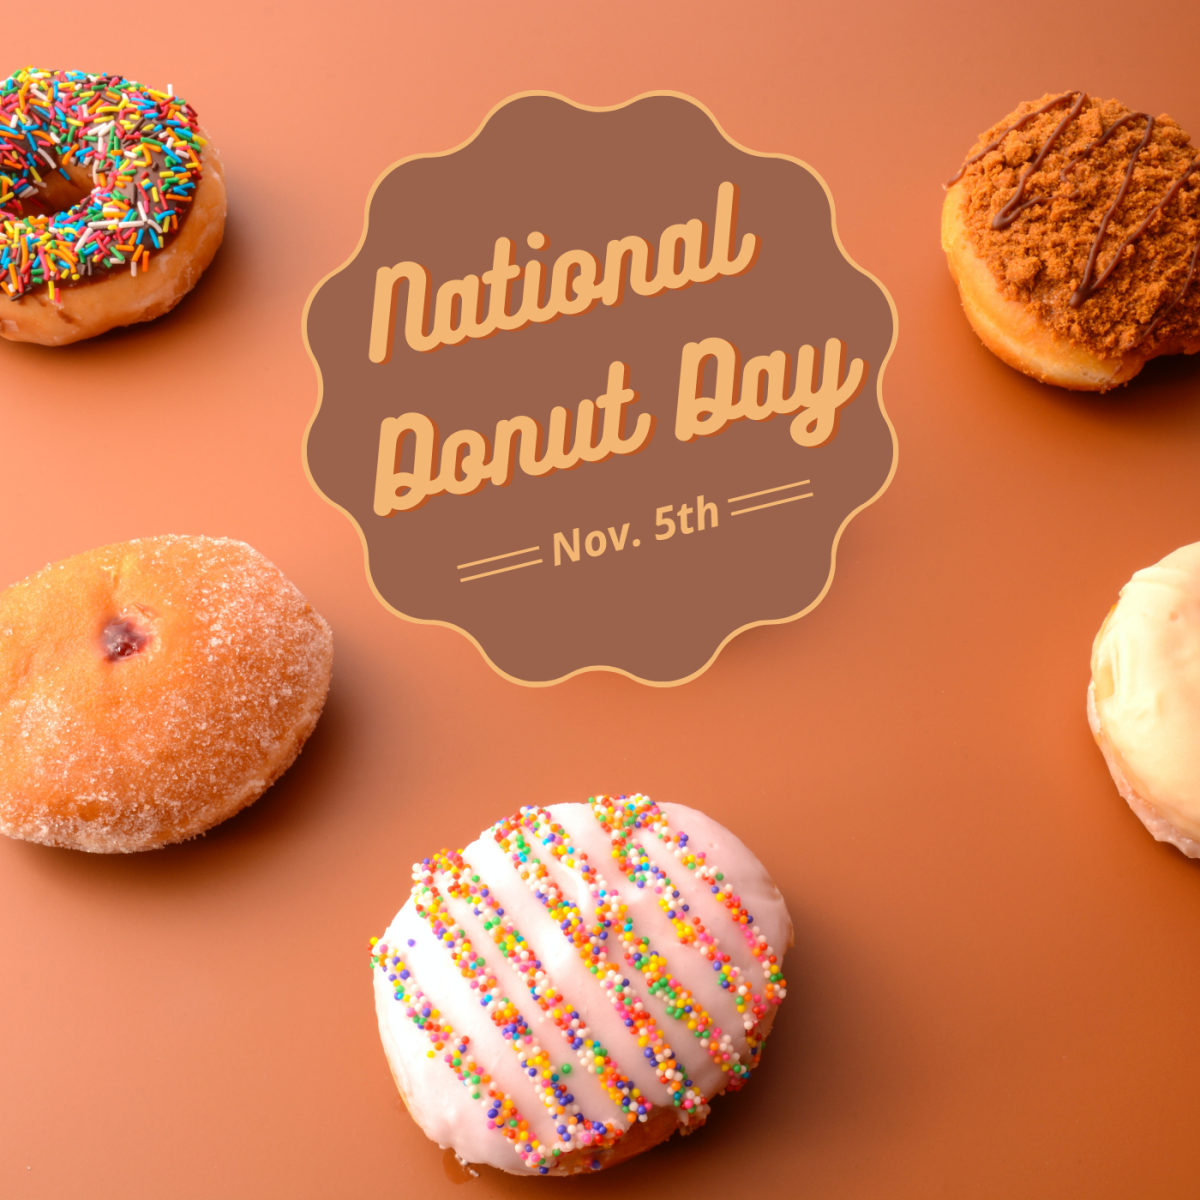 Celebration Ideas and Fun Facts For National Donut Day